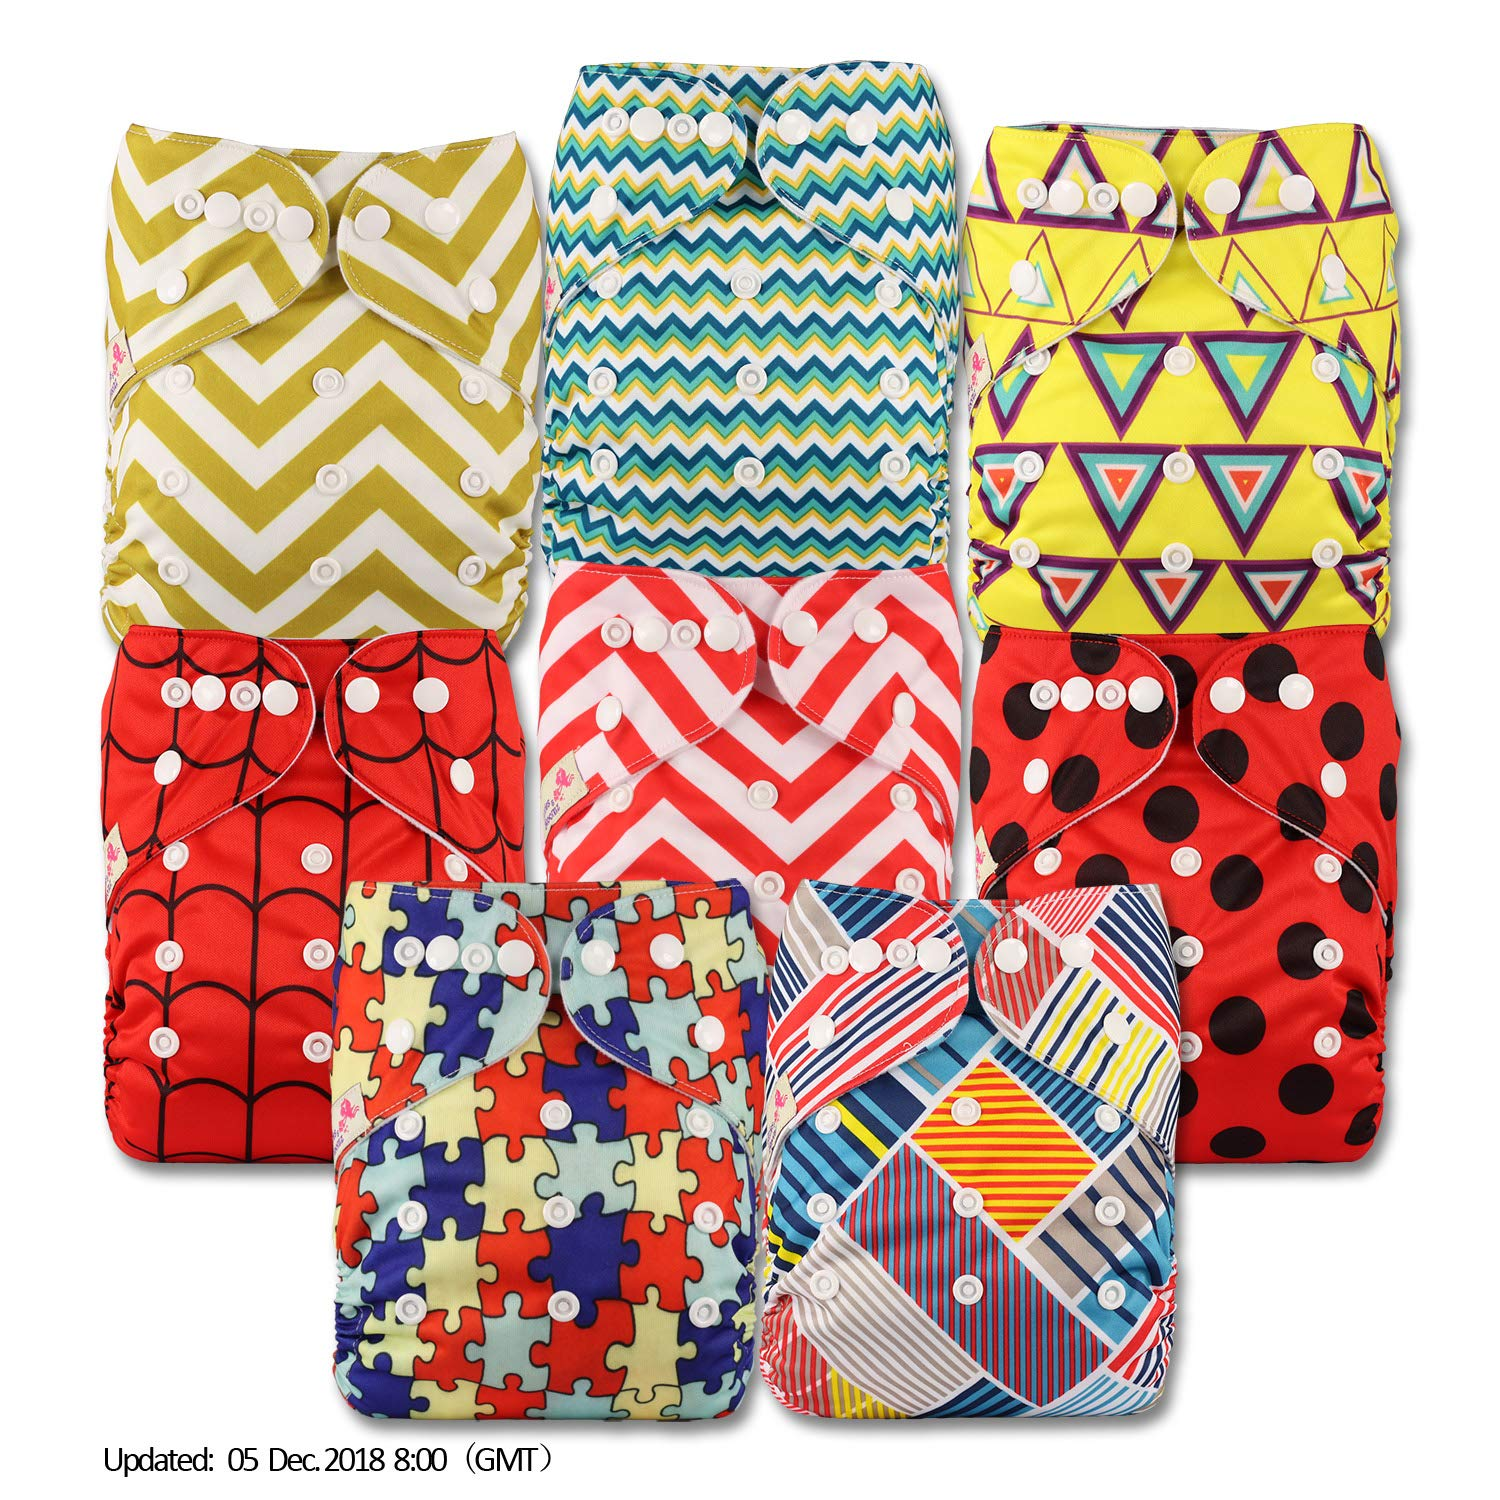 Littles /& Bloomz Fastener: Popper Set of 8 Patterns 810 with 16 Bamboo Charcoal Inserts Reusable Pocket Cloth Nappy